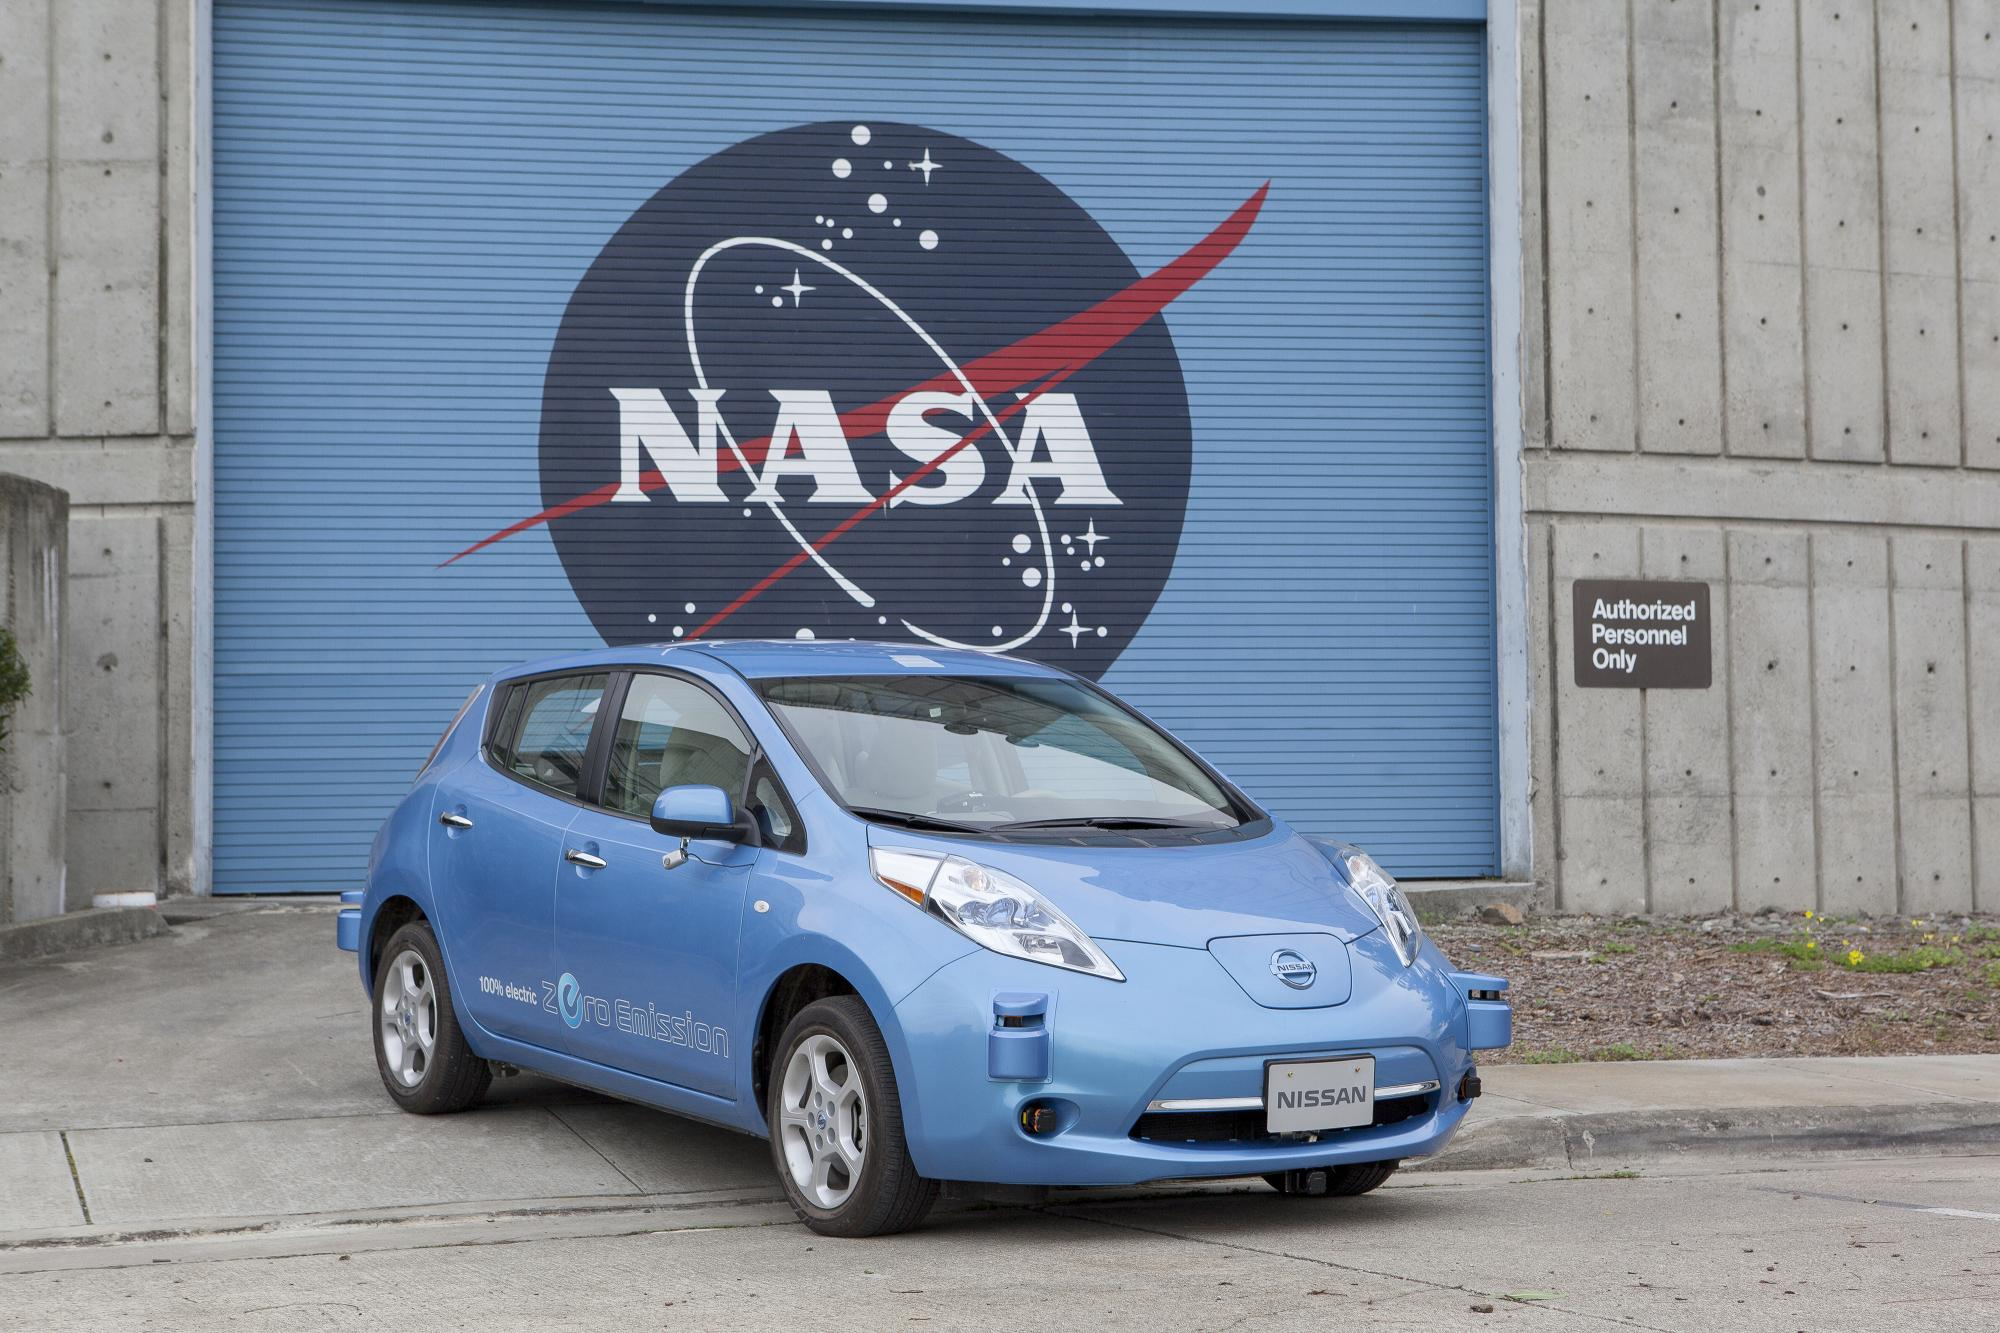 Nissan to Develop Autonomous Driving Tech with NASA